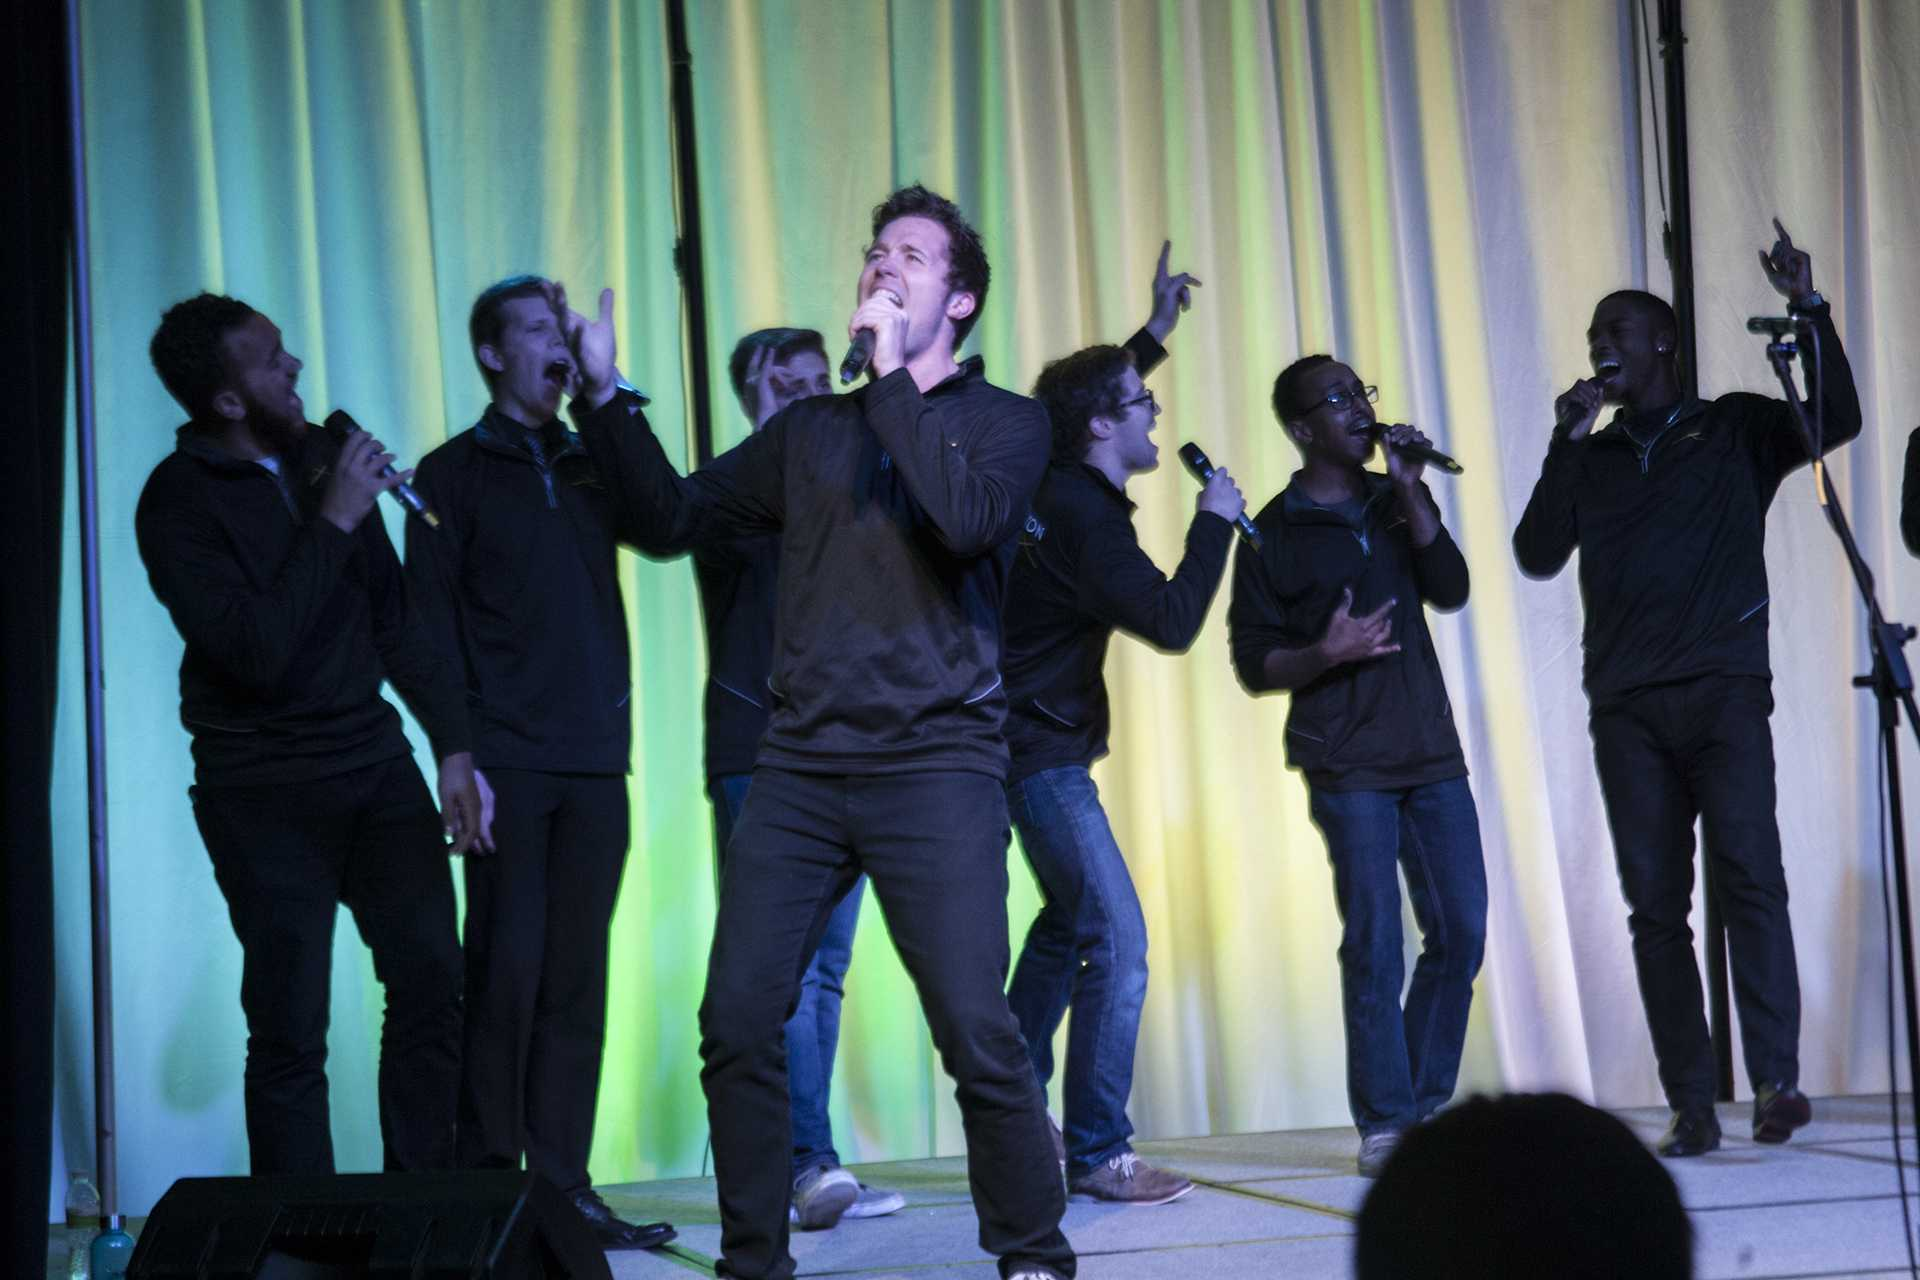 Intersection performs during the Acapella Fall Festival in the IMU Main Lounge on Monday, Nov. 13, 2017. The four groups performed a mix of the Penatonix, Hozier, Sia, and Florence and the Machine. (Katie Goodale/The Daily Iowan)